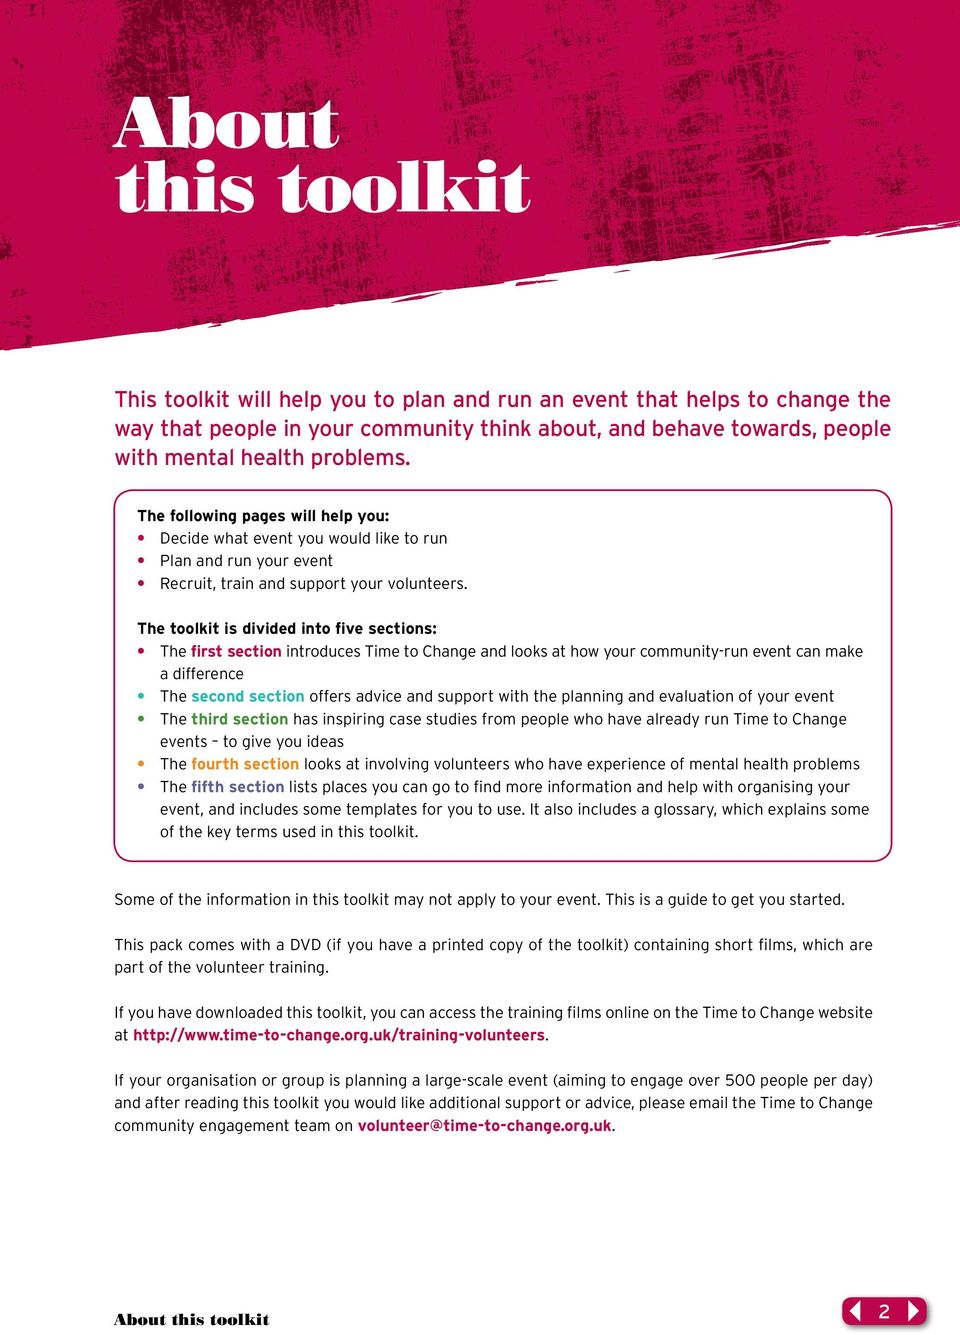 The toolkit is divided into five sections: The first section introduces Time to Change and looks at how your community-run event can make a difference The second section offers advice and support